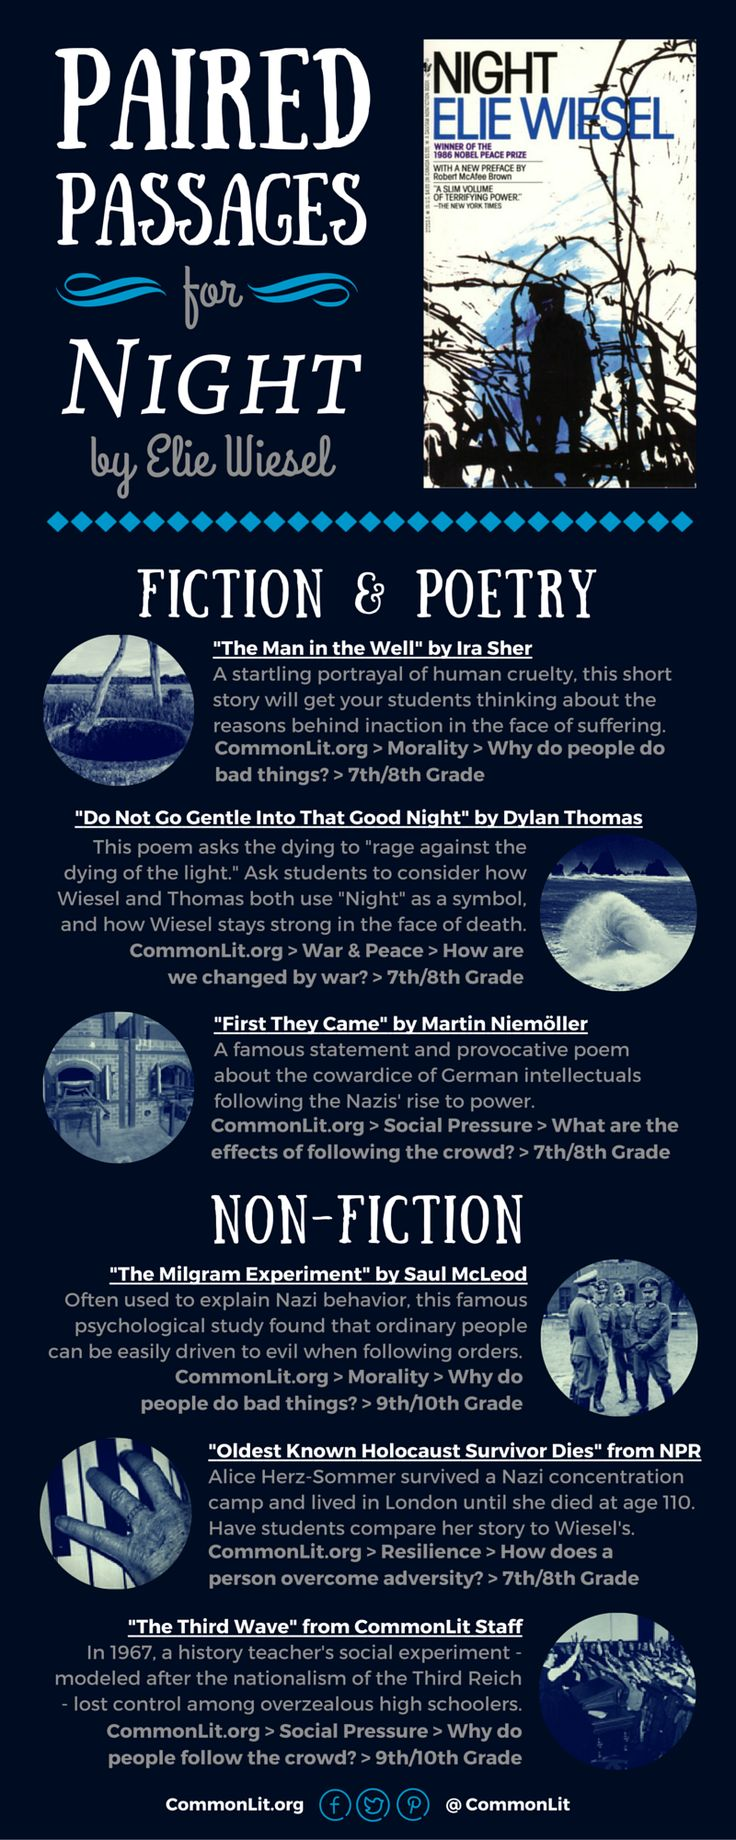 Teaching Night by Elie Wiesel? Use these paired passage suggestions to get your students thinking about the major themes of the memoir. All texts are freely available at Commonlit.org.